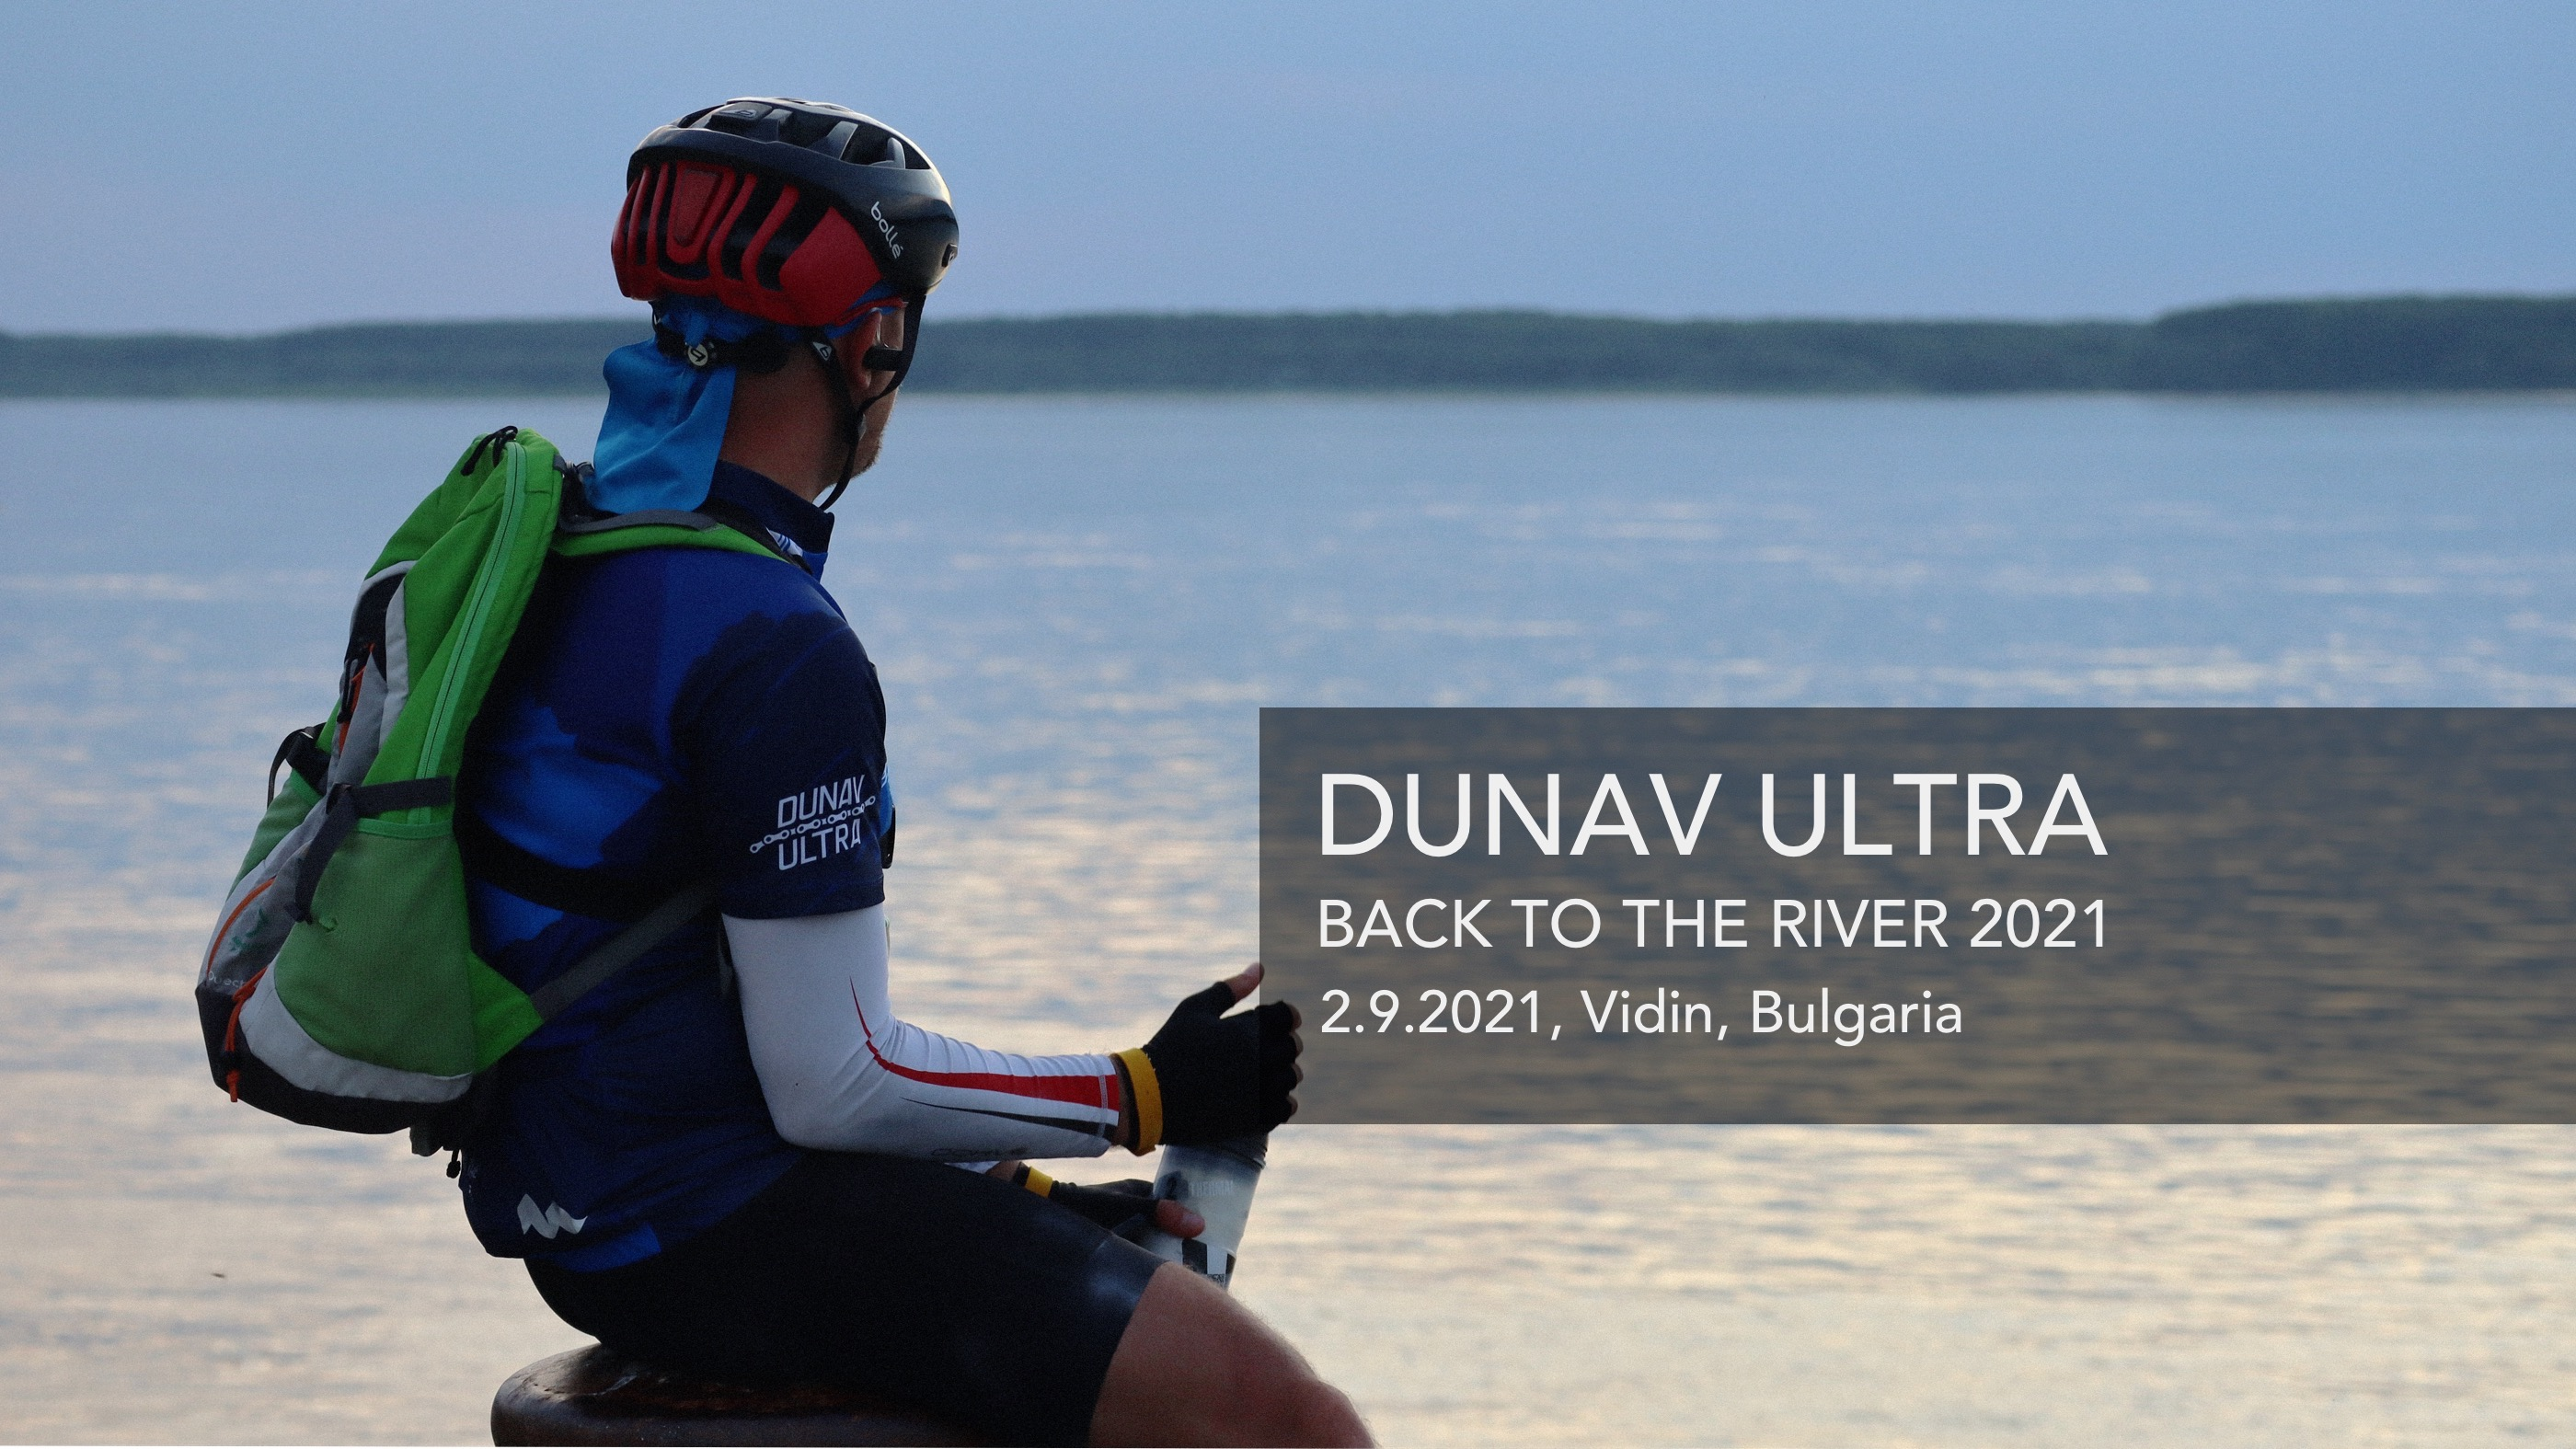 Pre-registration for Dunav Ultra '21 now is open